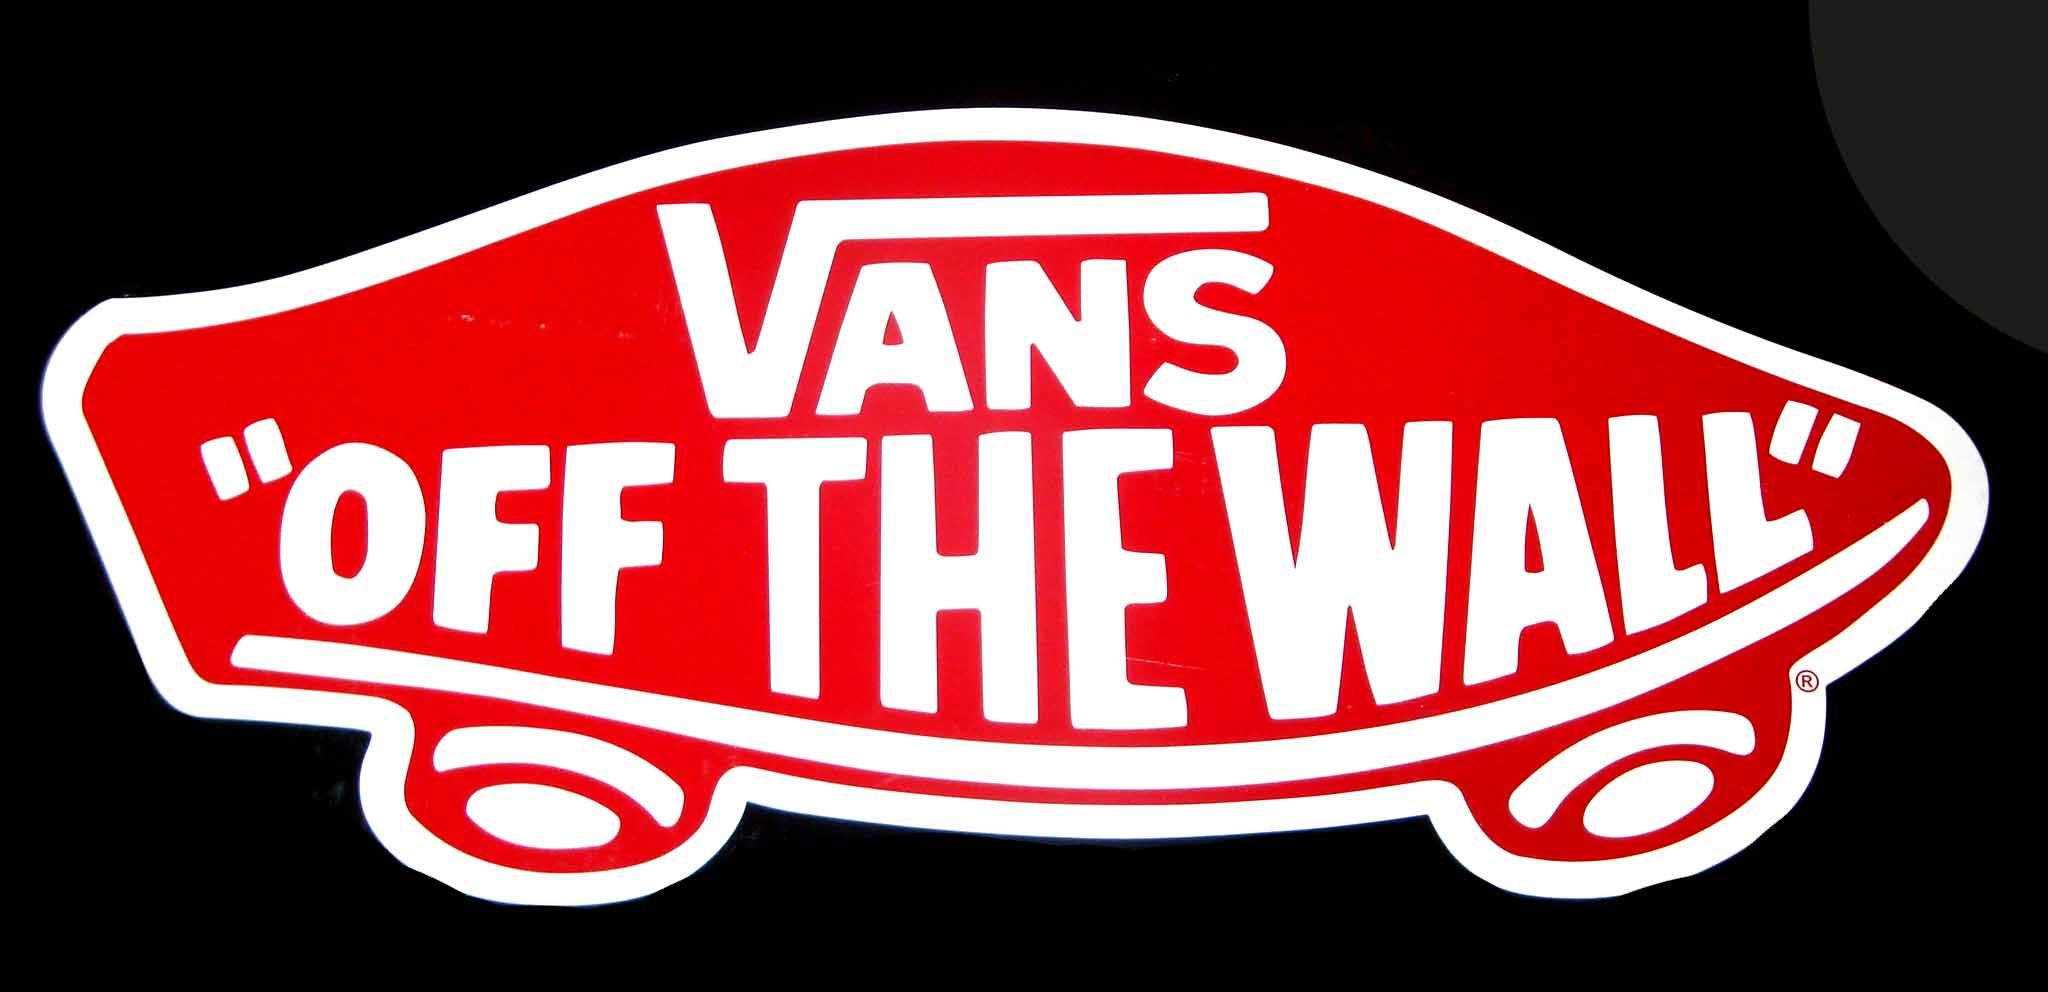 vans logo vans off the wall off the wall van on off the wall id=42042